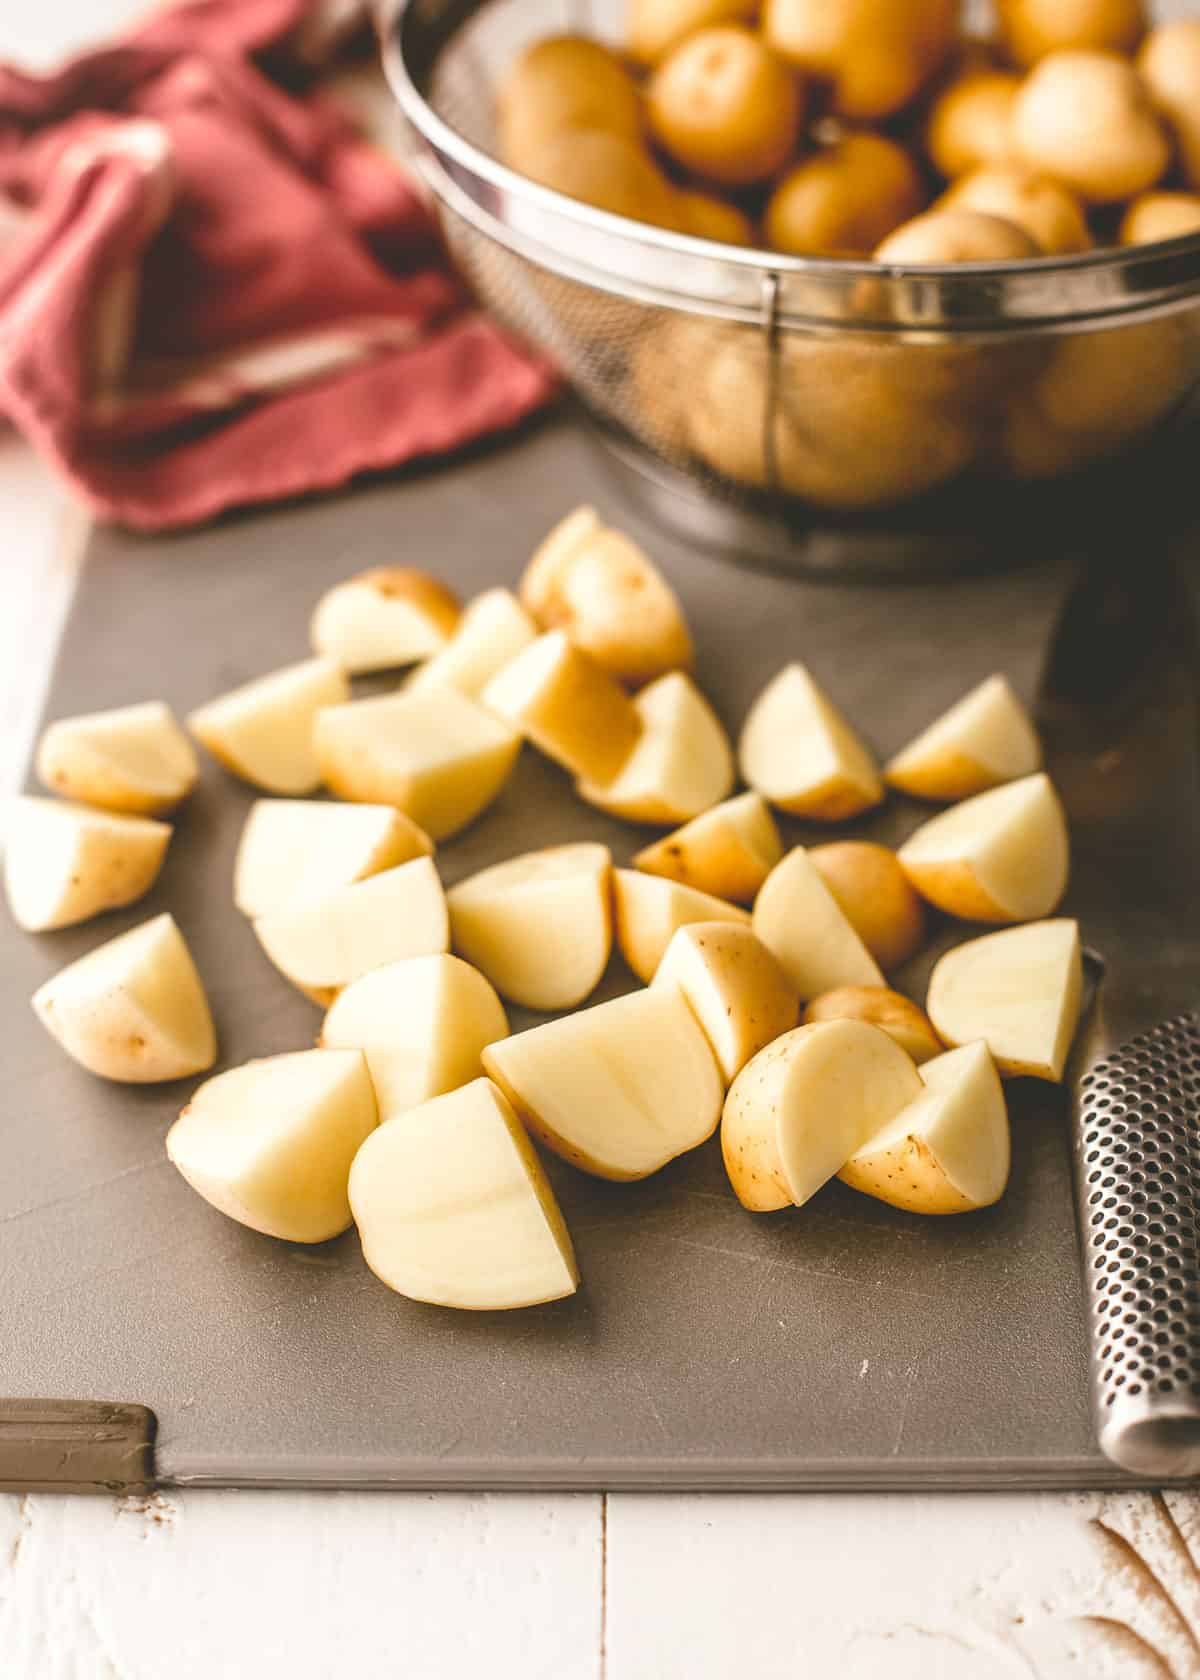 diced potatoes on a cutting board